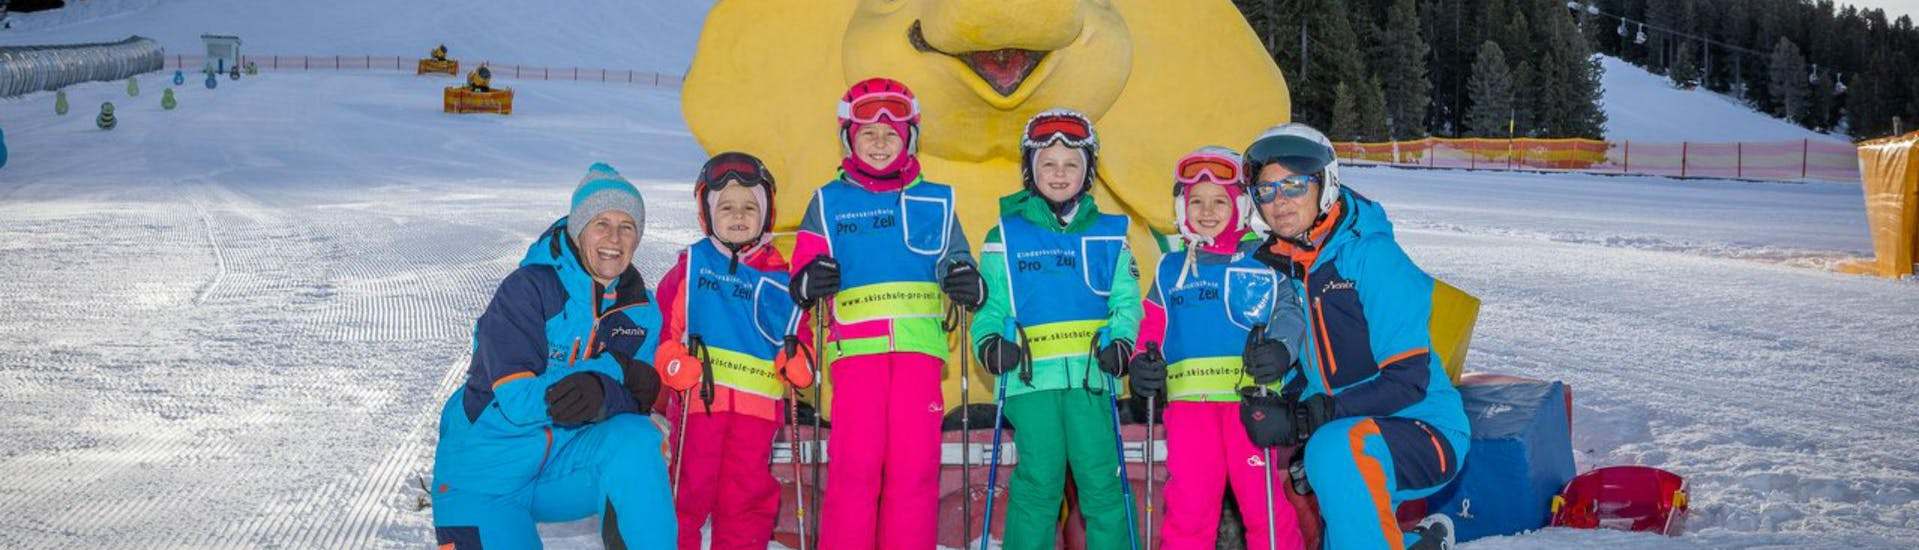 A group of children and their two ski instructors from the ski school Skischule Pro Zell in Zell am Ziller are posing for a photo in the Kinderland area during their Kids Ski Lessons (from 6 years) - Advanced .